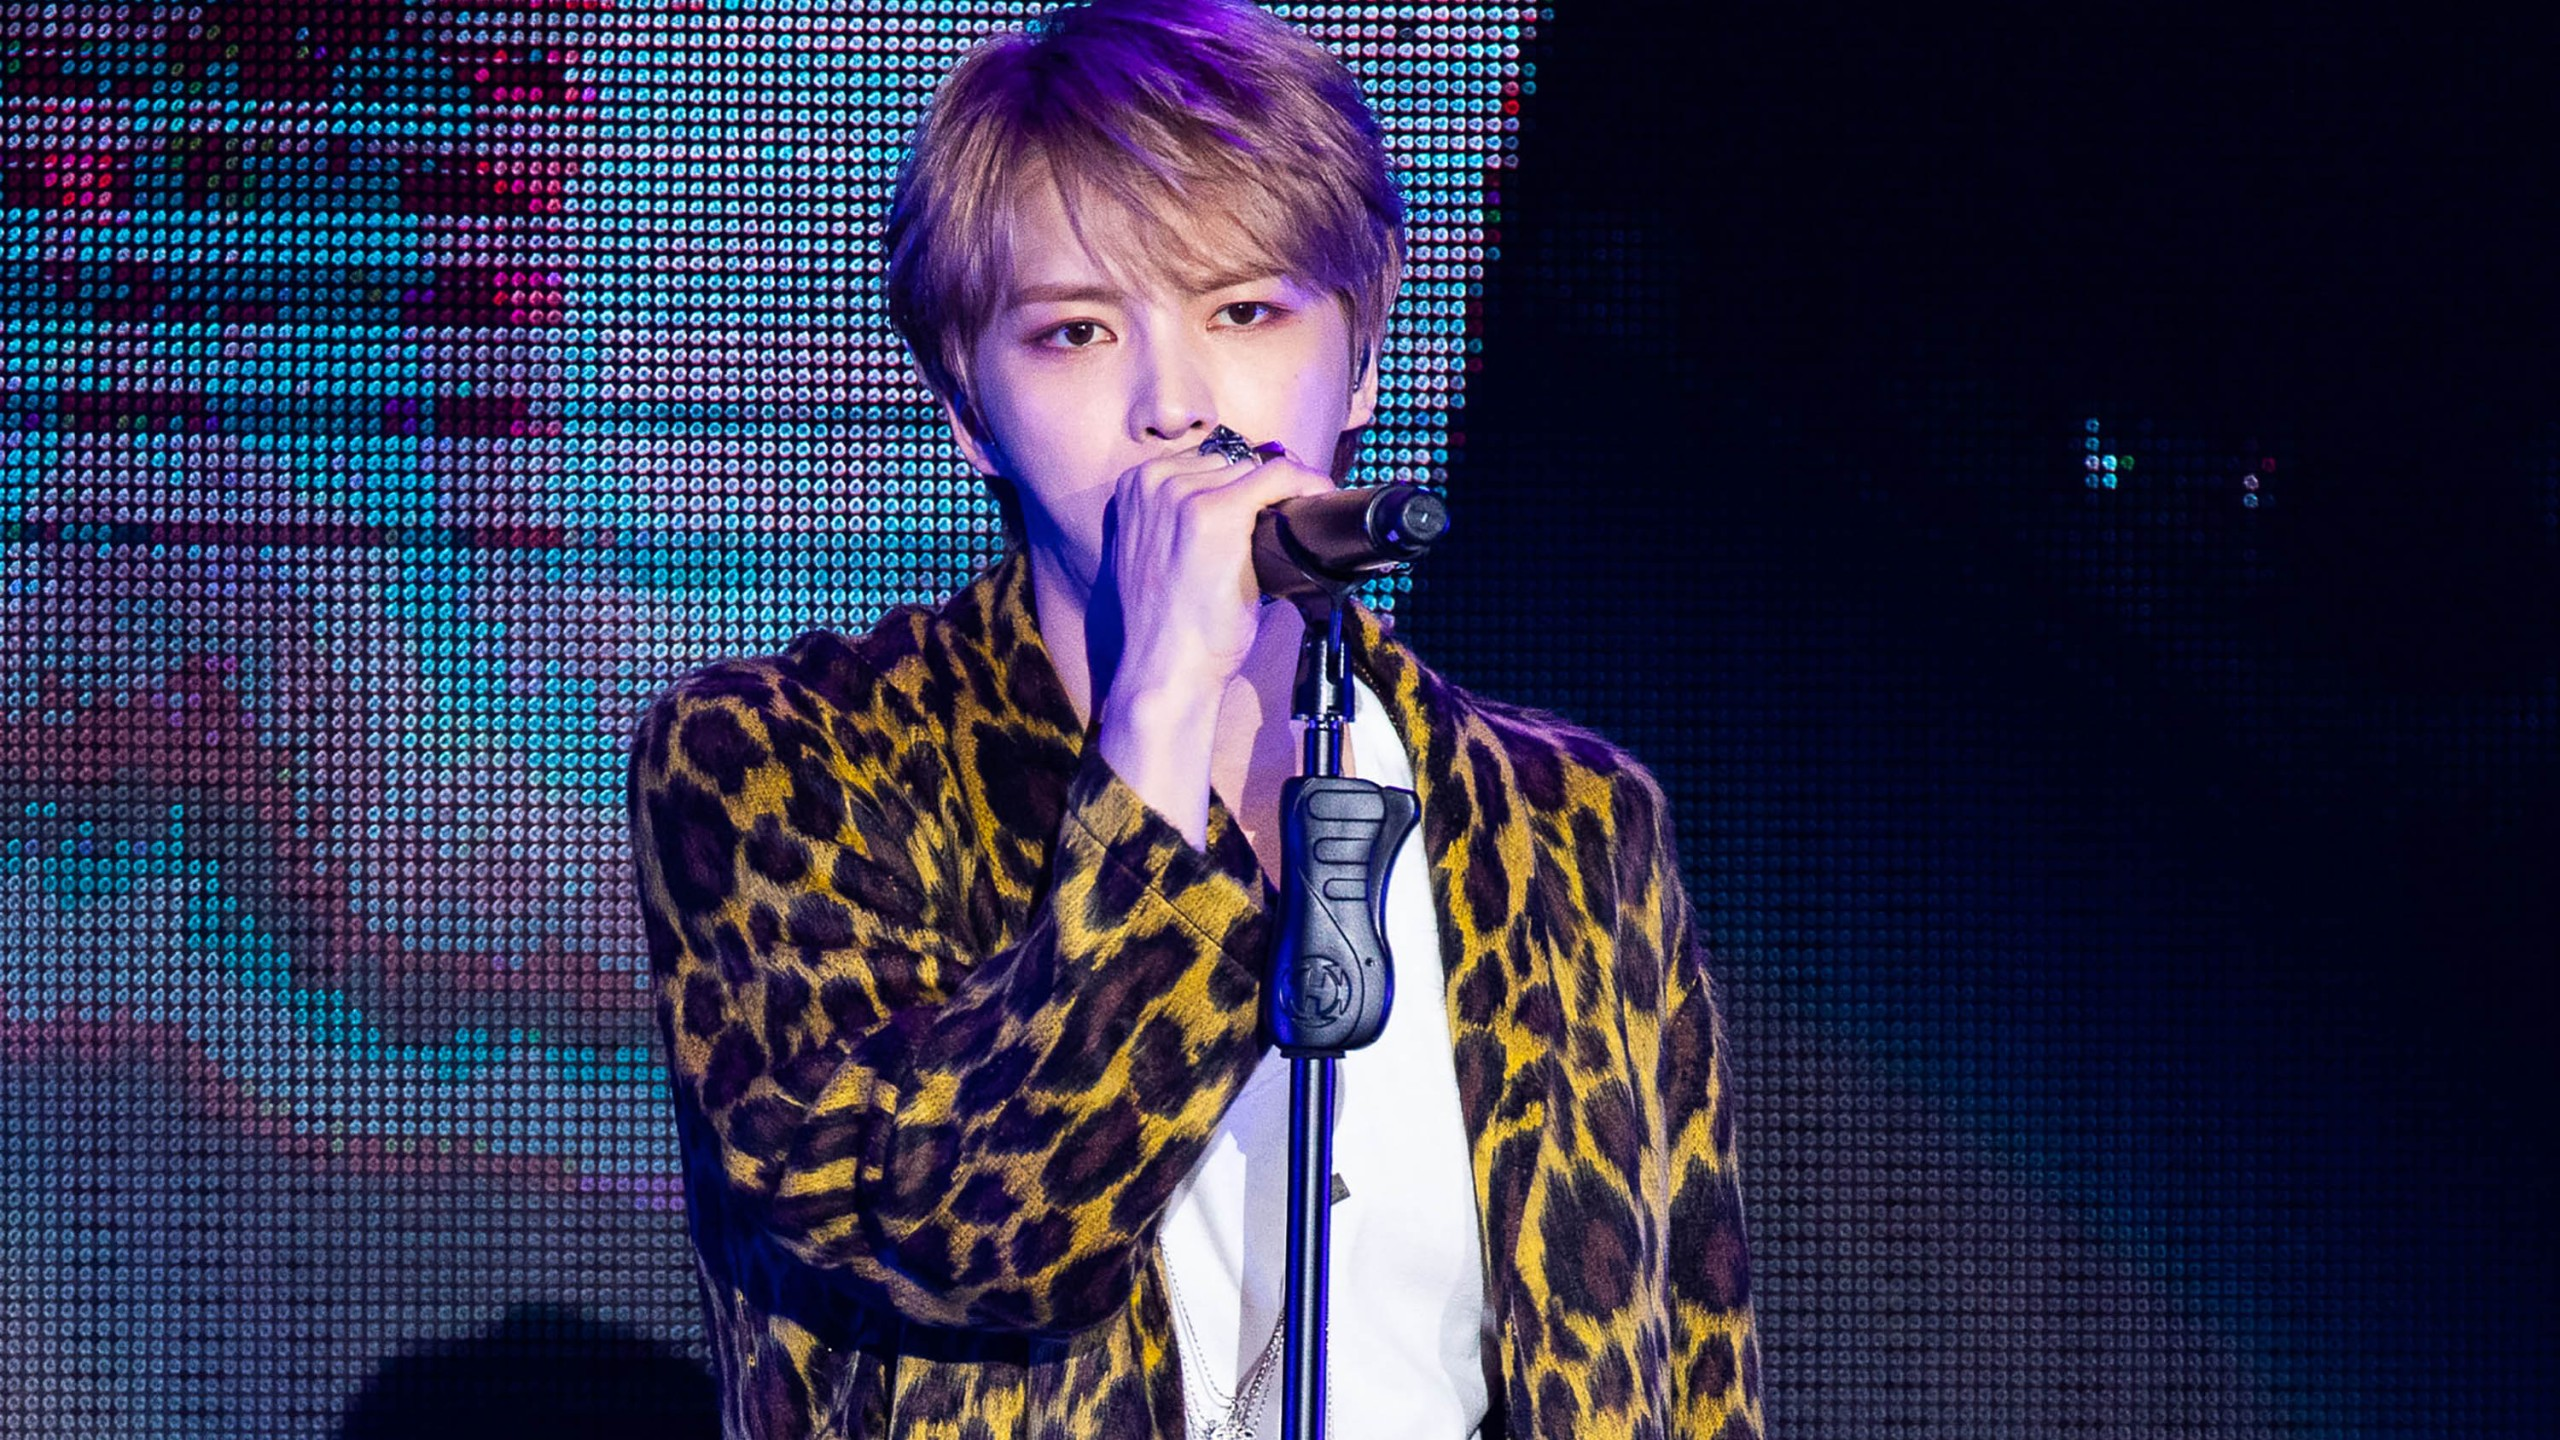 South Korean singer Kim Jae-joong has apologized for his post, where he told fans he had caught coronavirus after ignoring government warnings. (Visual China Group/Getty Images)